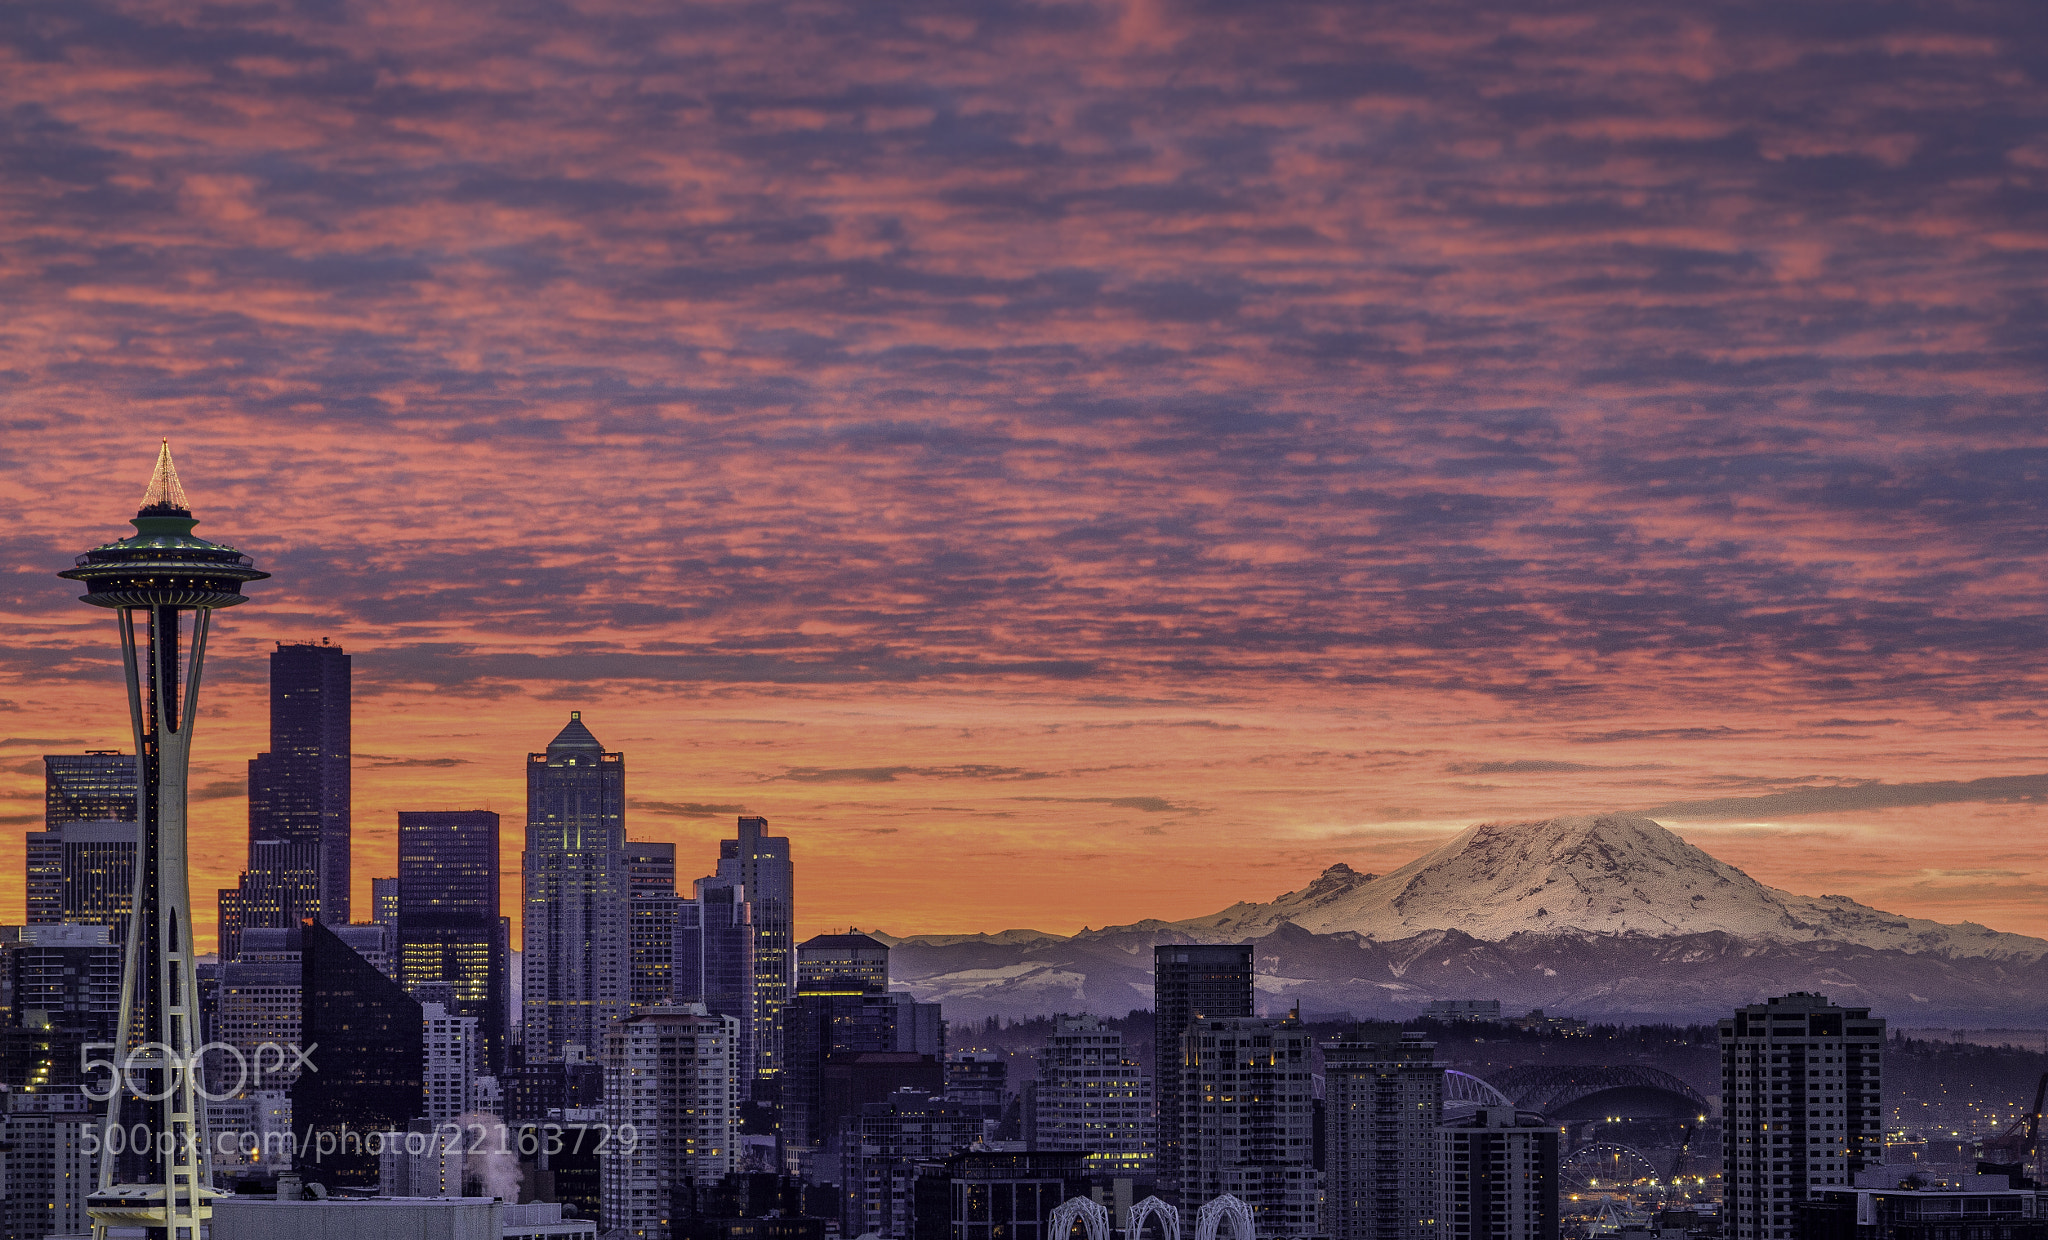 Photograph Winter Sunrise in Seattle by Aman Agarwal on 500px